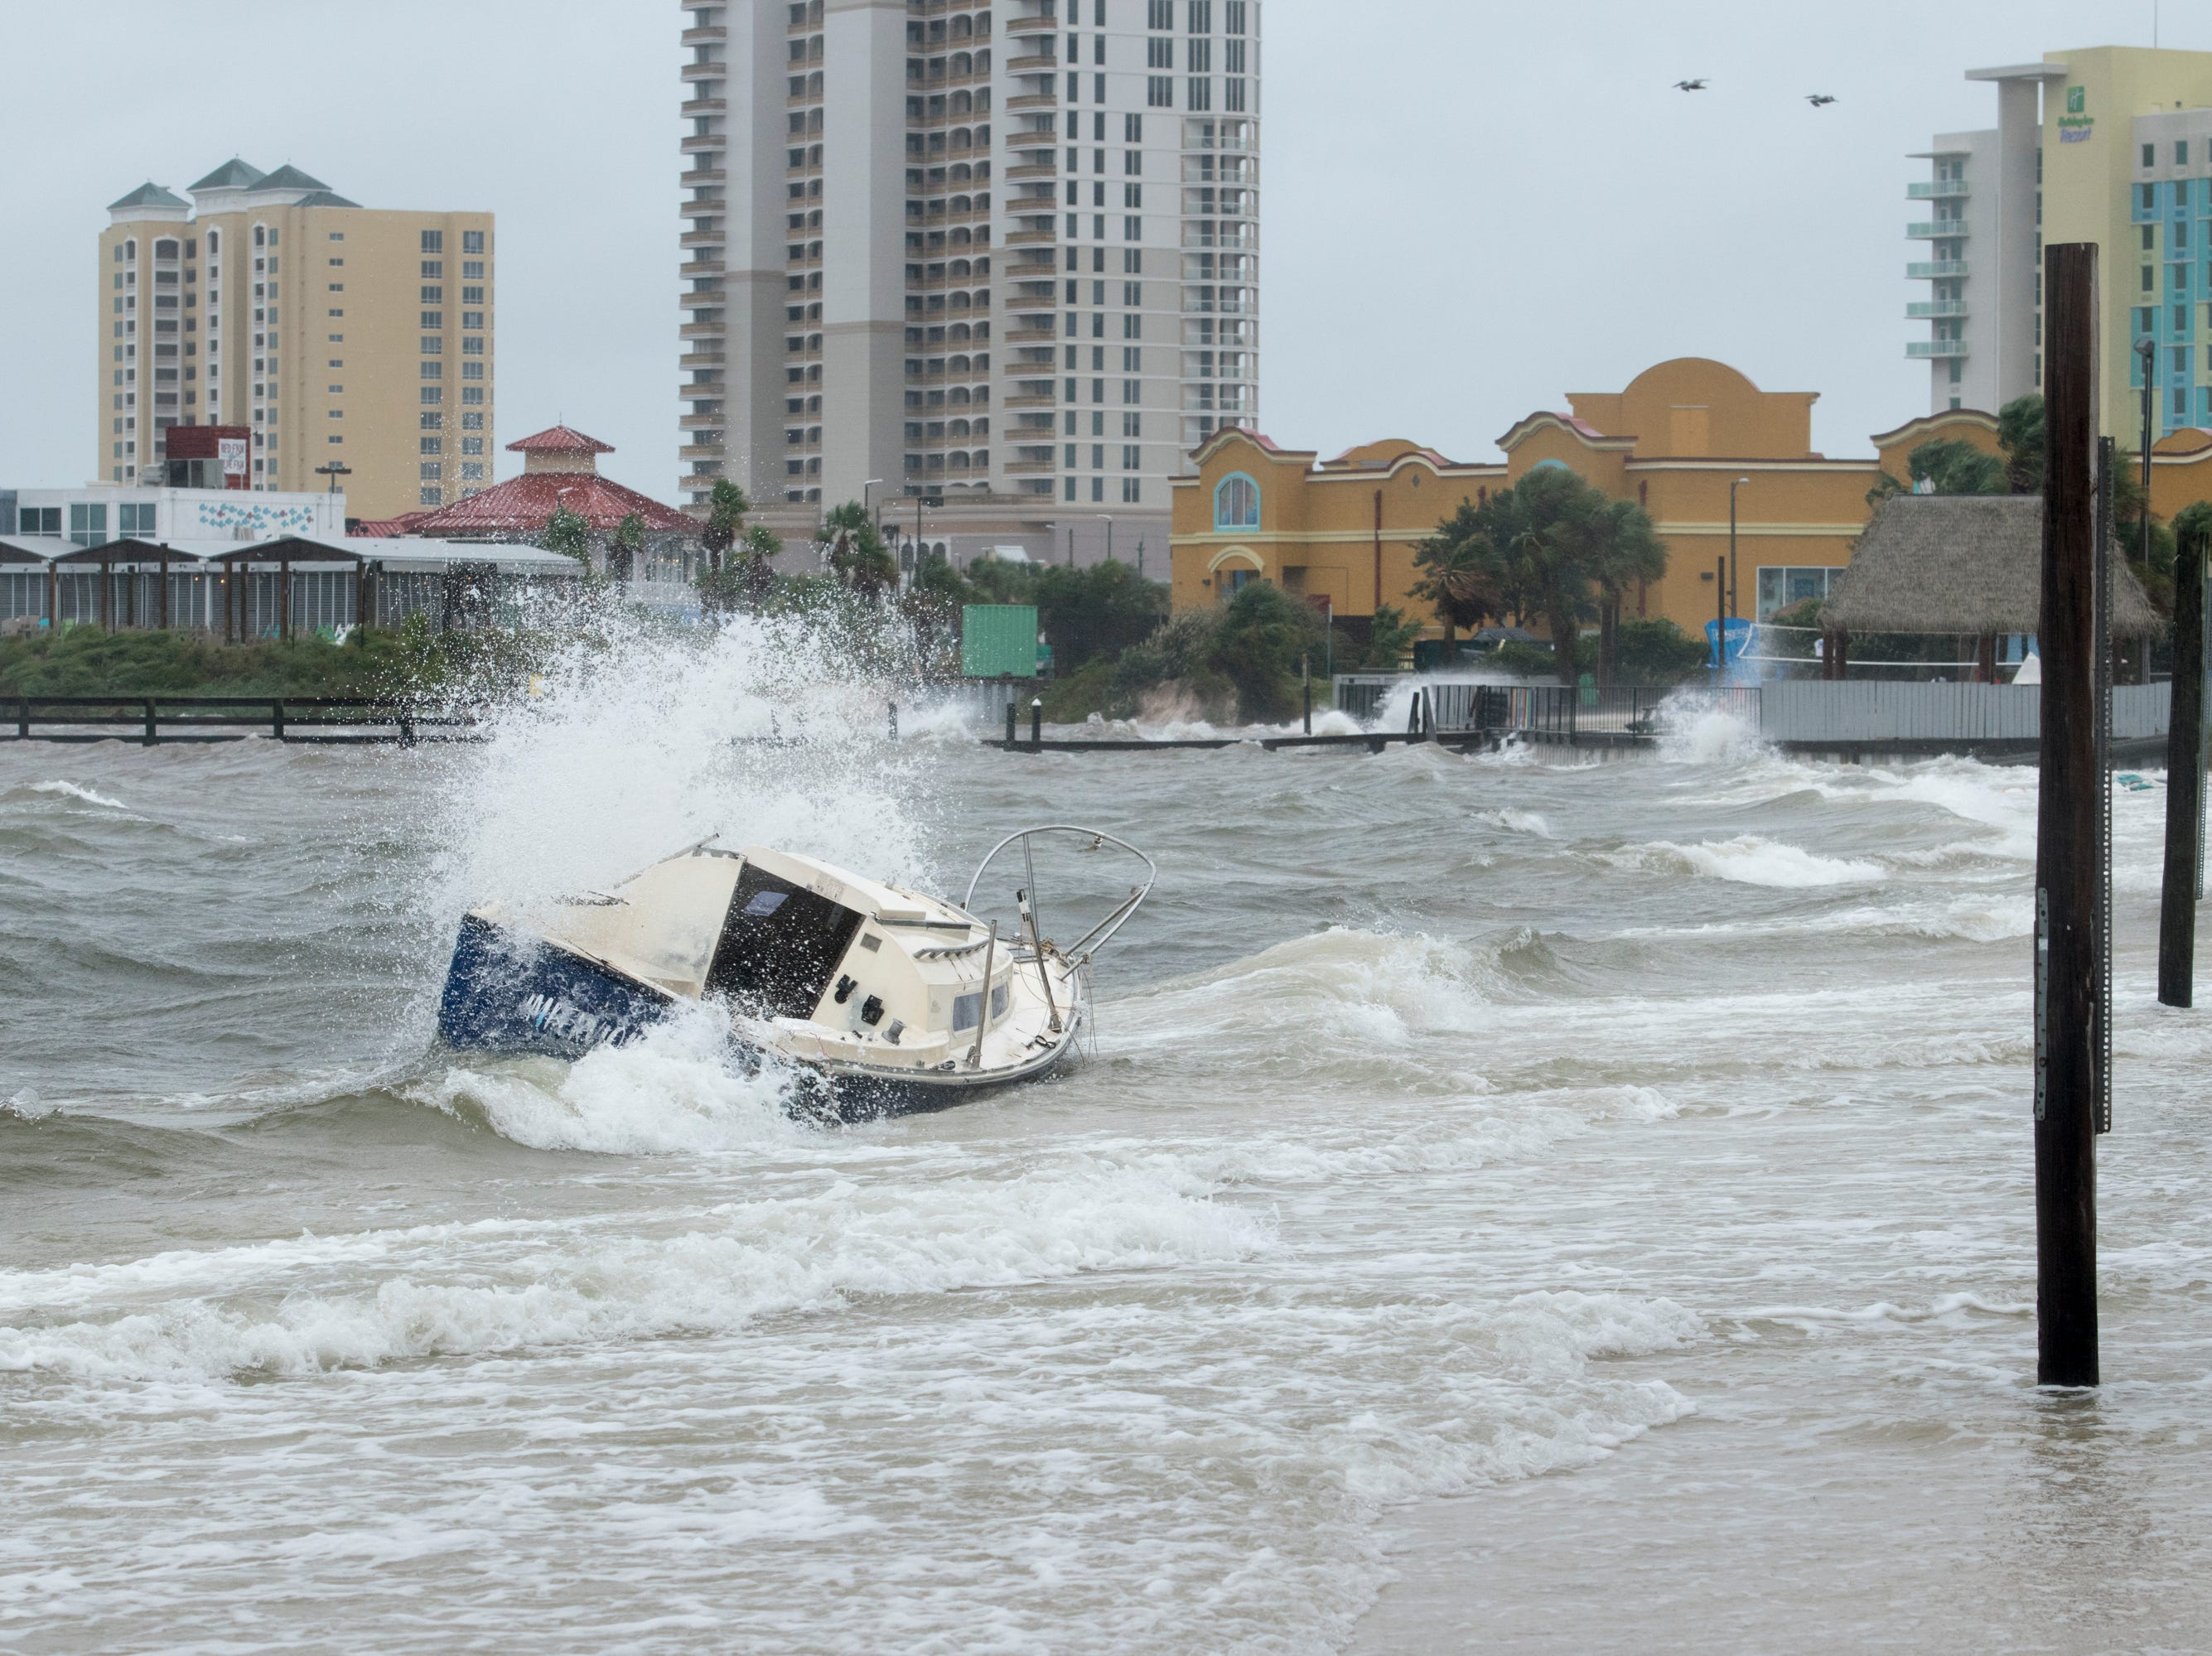 A boat runs aground at Quietwater Beach as Hurricane Michael arrives in Pensacola on Wednesday, October 10, 2018.